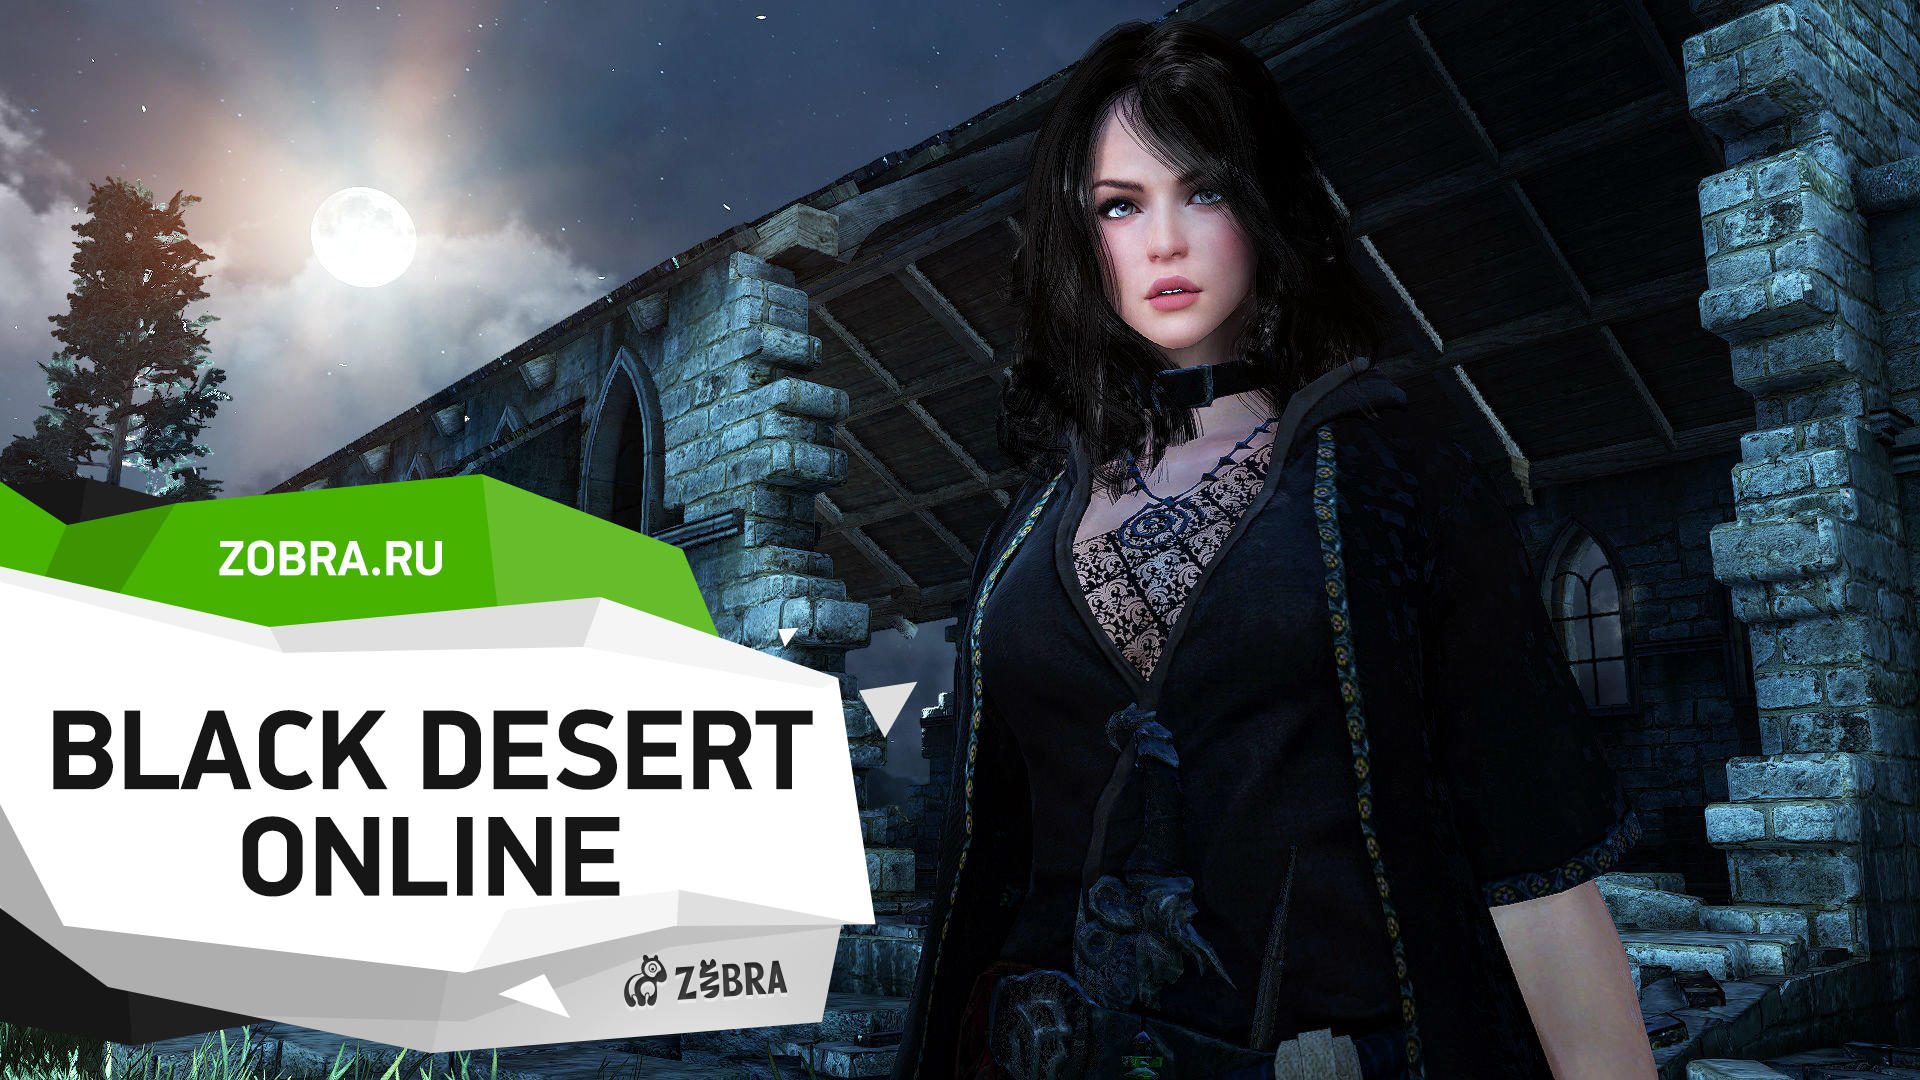 can't connect to black desert online